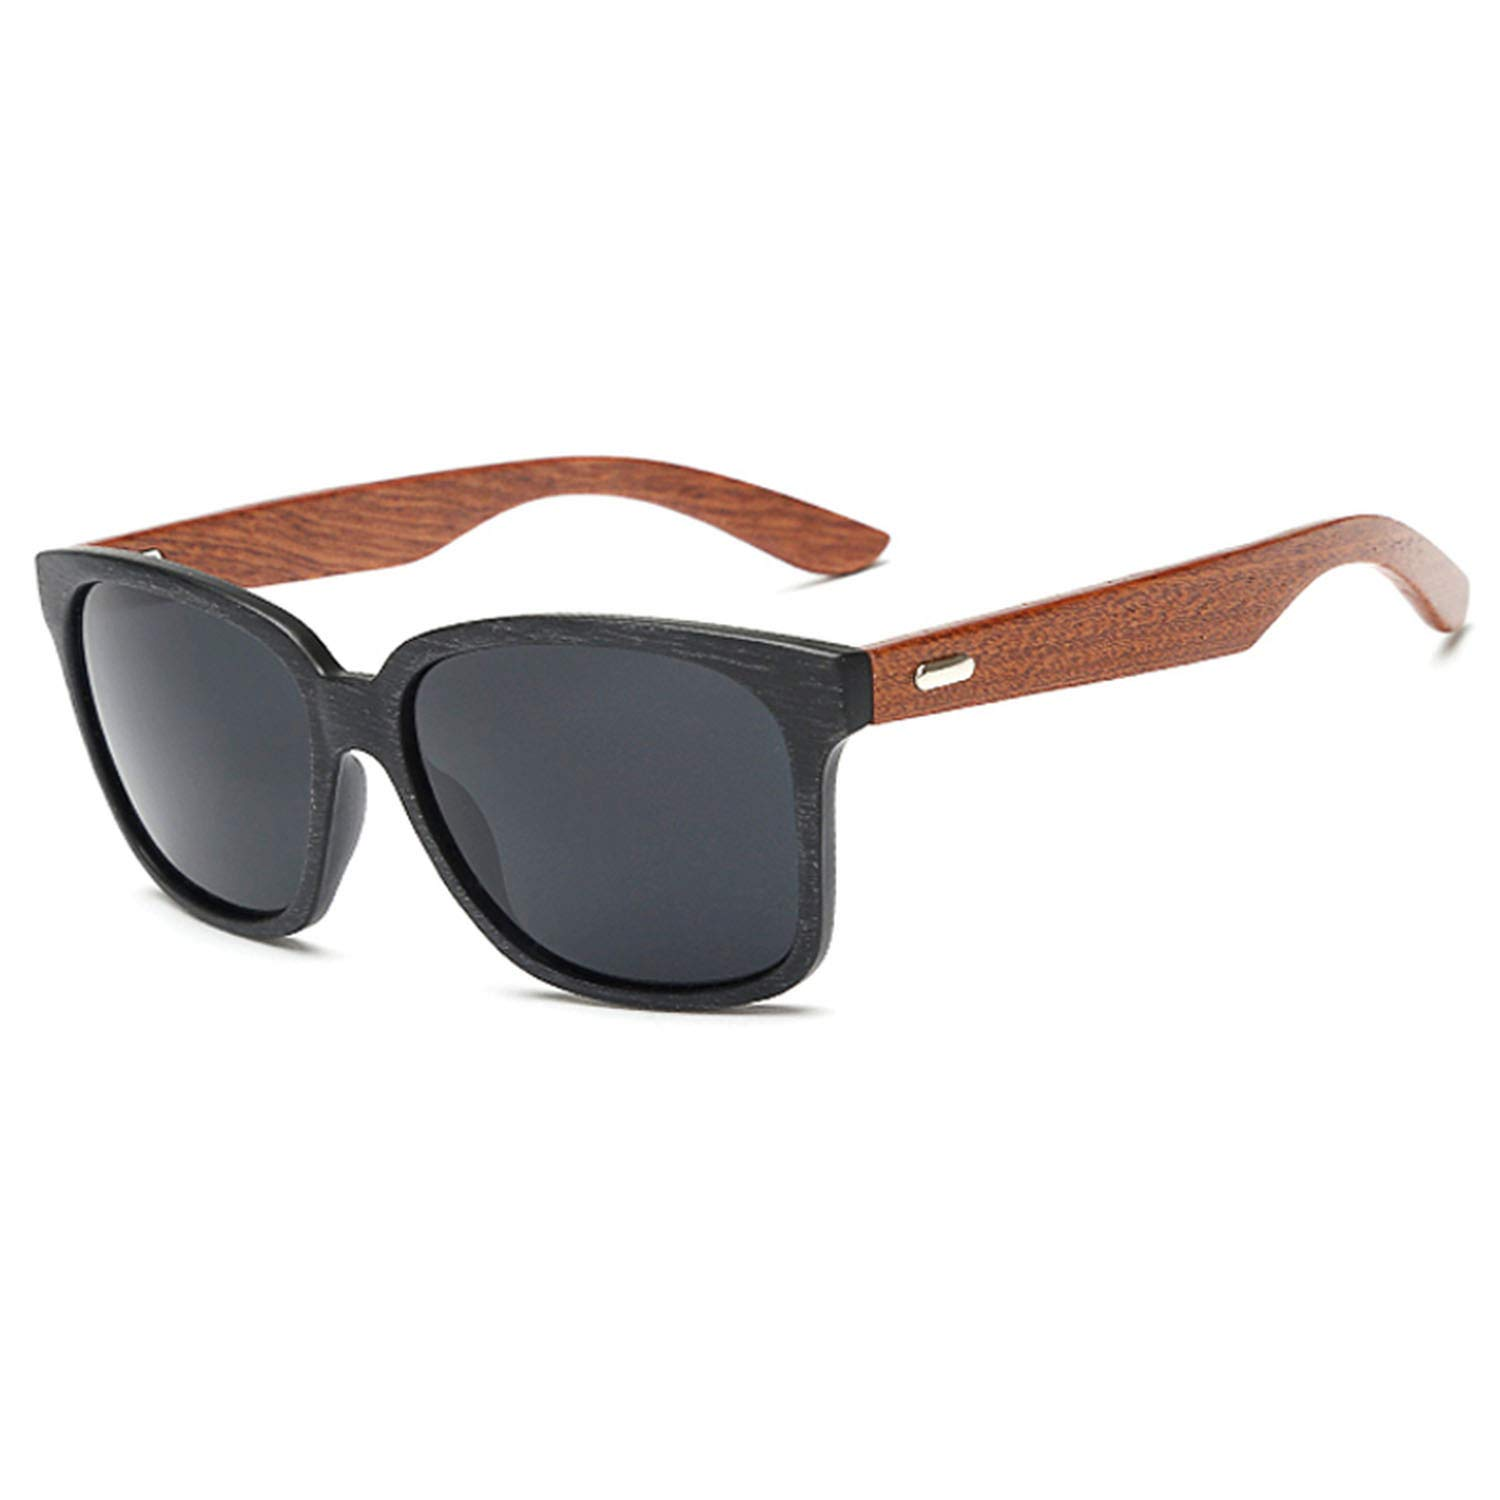 Amazon.com: Wooden Frame Sunglasses Unisex Wood Foot Men ...